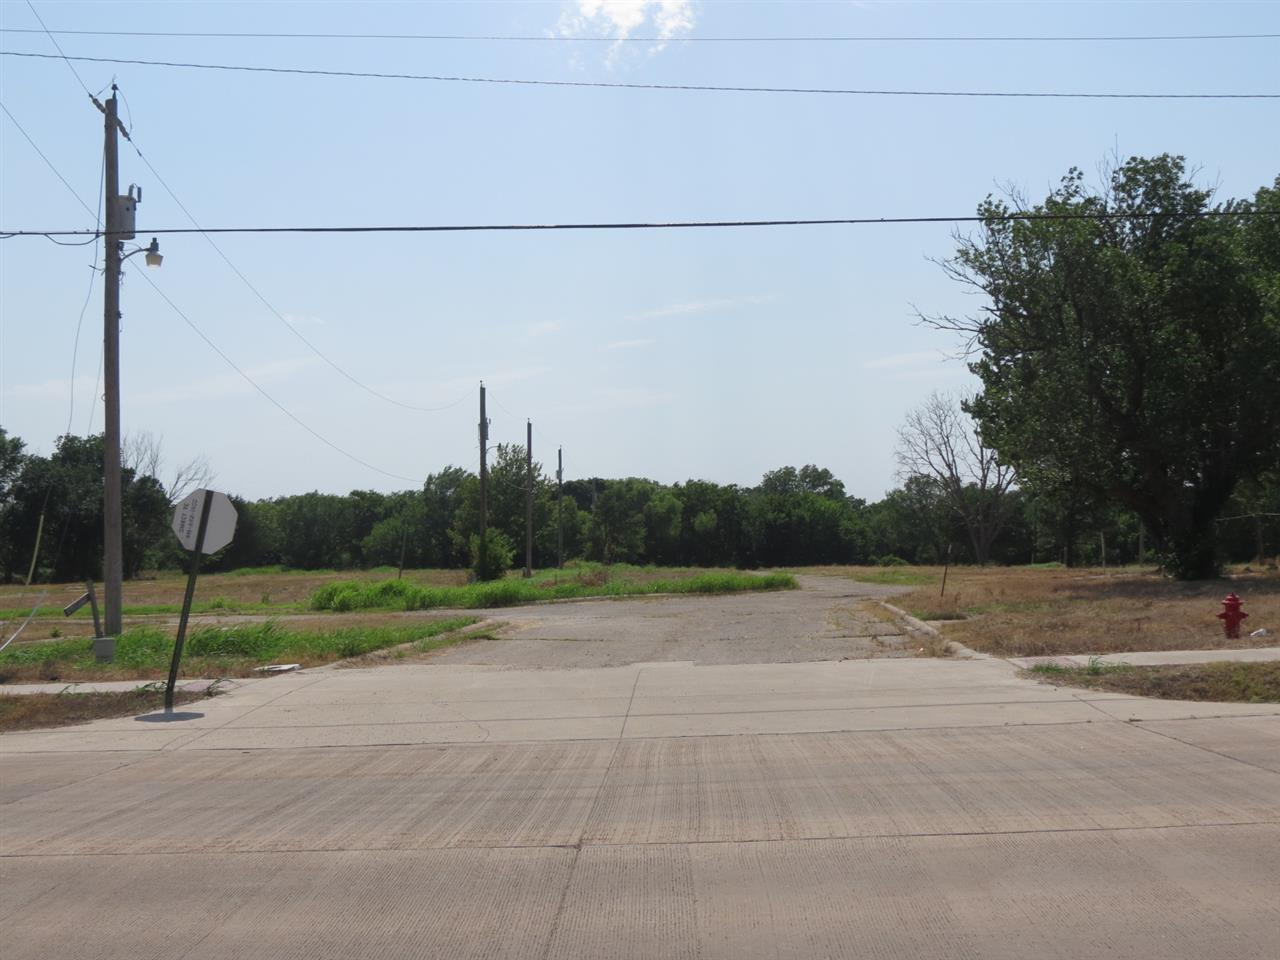 6.25 acres m/l of prime land with Frontage along Jardot Rd. Jardot has been recently paved & improved. City utilities available nearby.  Prospective buyers should satisfy themselves of adequacy of utility service and suitability for development.  7th street & Payne streets are platted but not open. Contact listing agent for additional information.  Drive by or walk over to view.